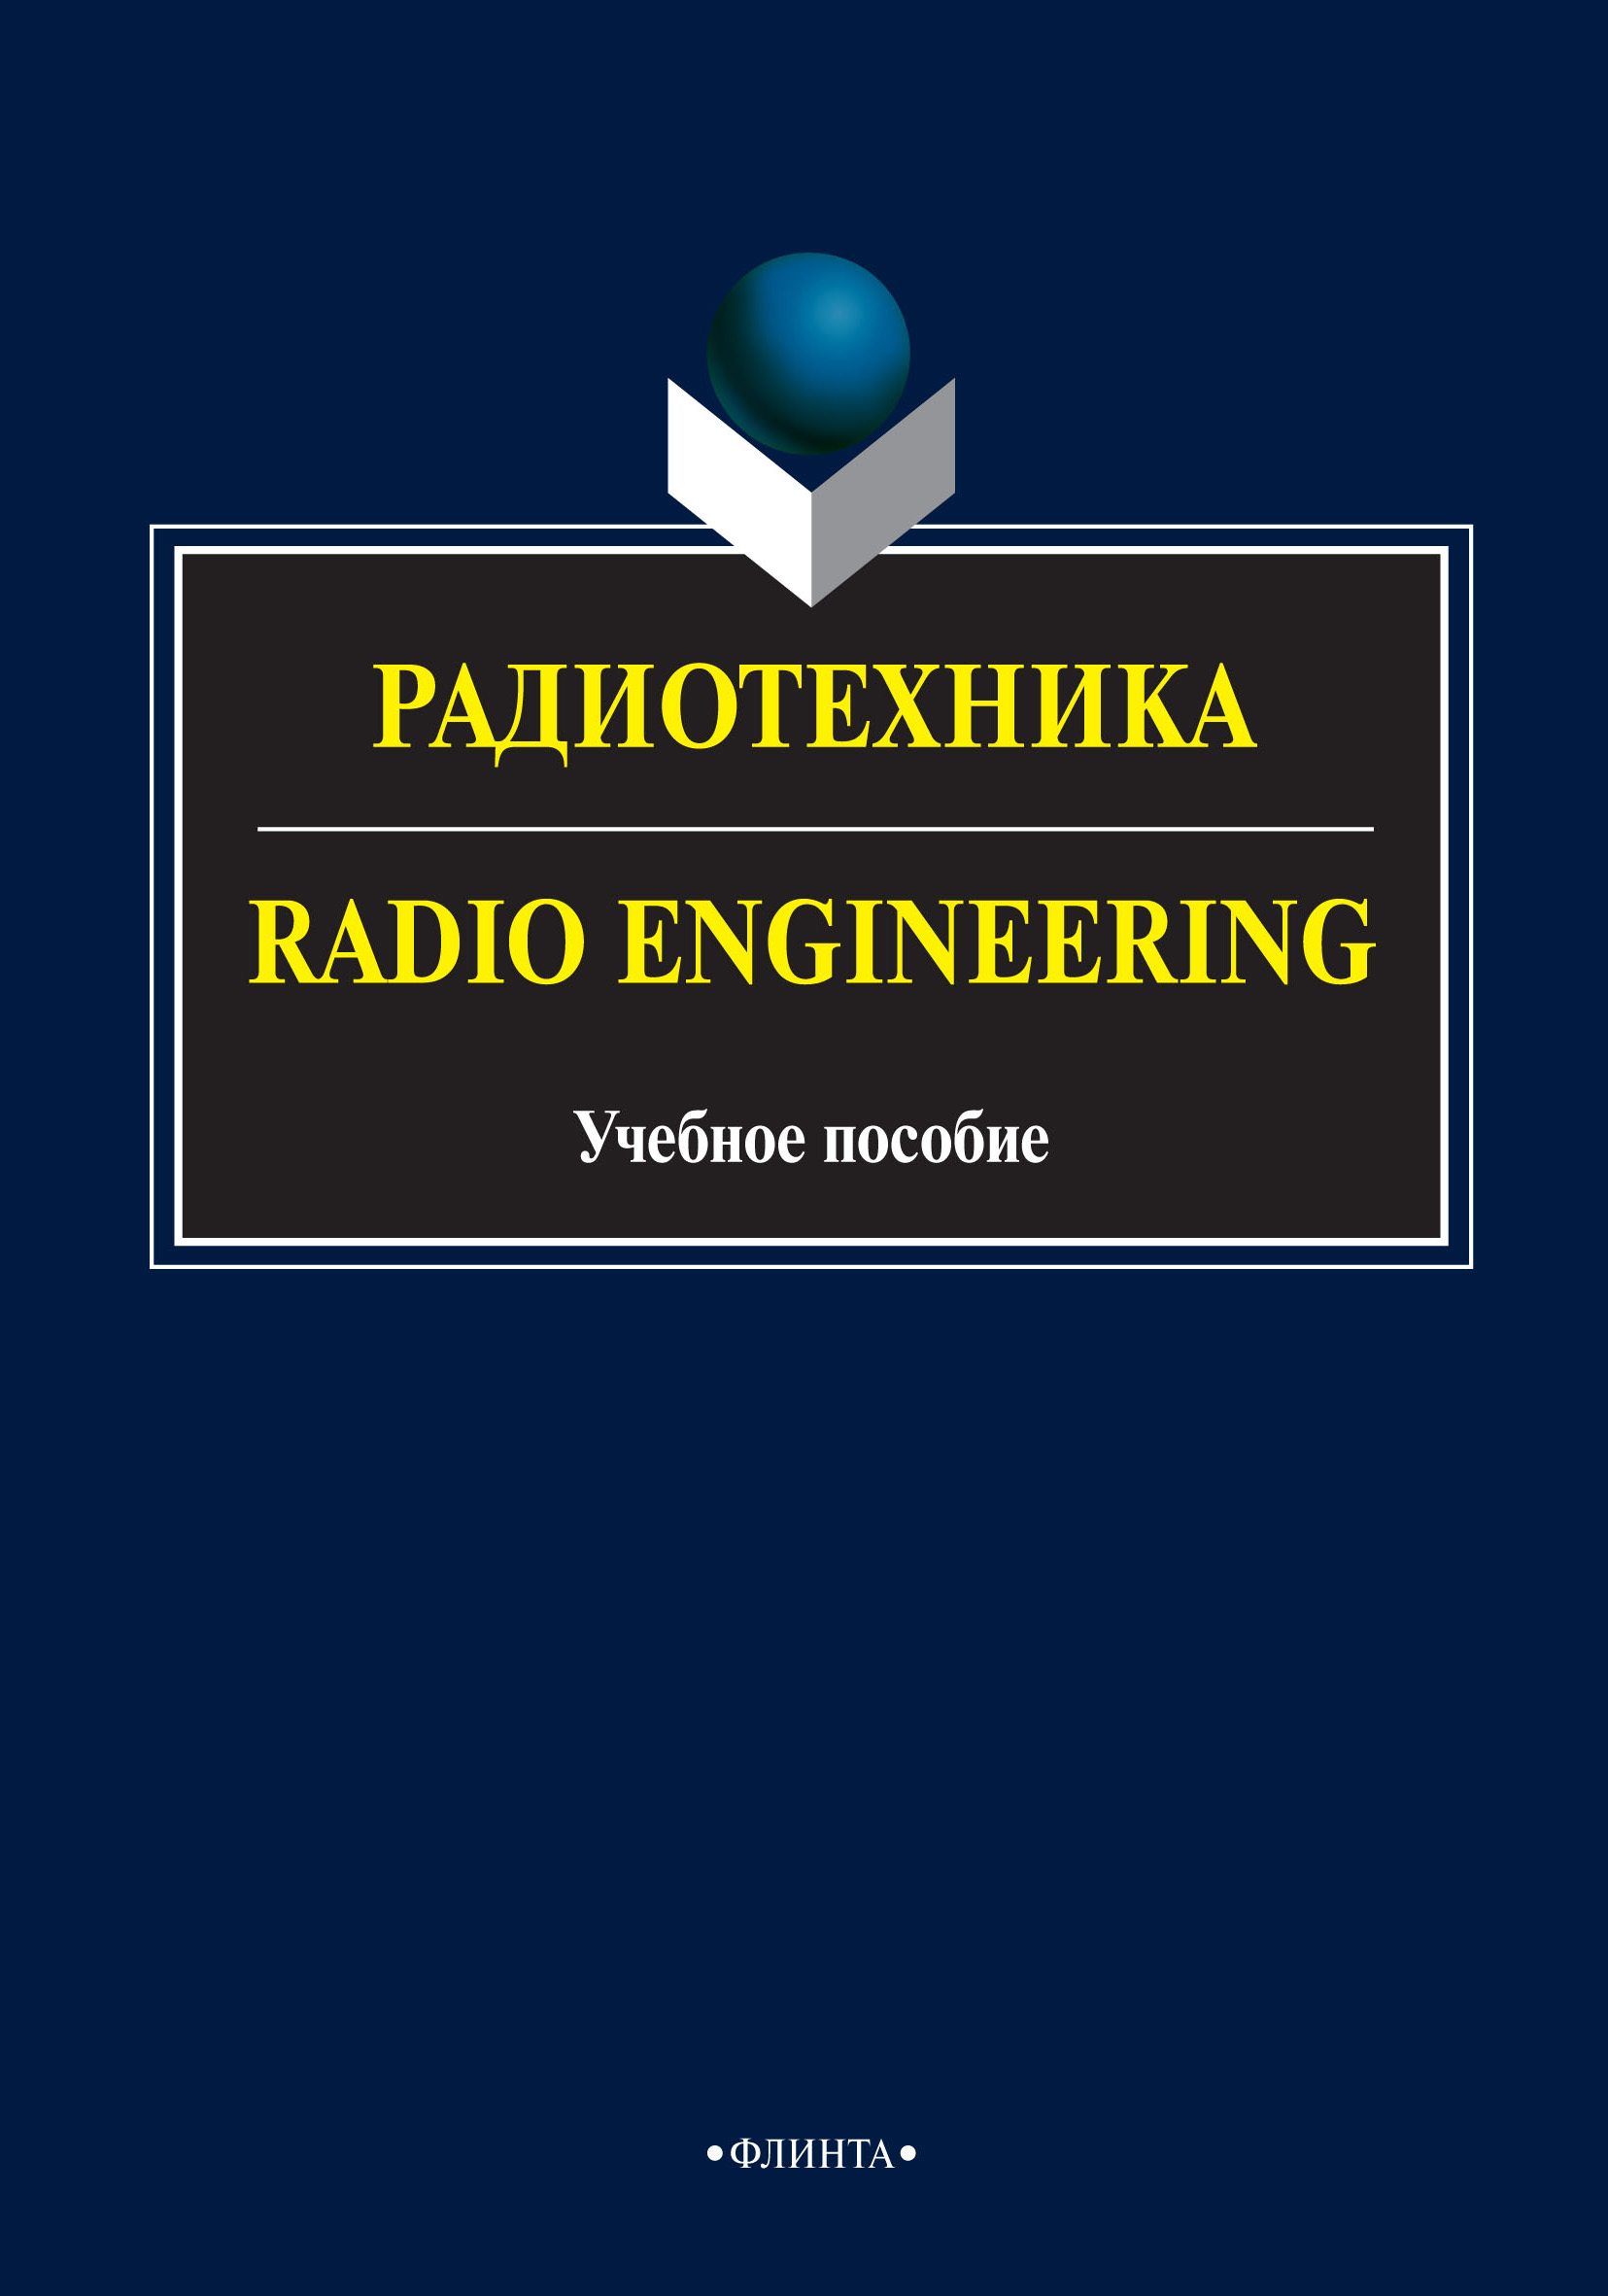 А. А. Опрышко Радиотехника / Radio Engineering. Учебное пособие 2km 500mw 3dr radio telemetry 915mhz 500mw bluetooth box v3 0 radio telemetry module for 3dr radio apm px4 pixhawk